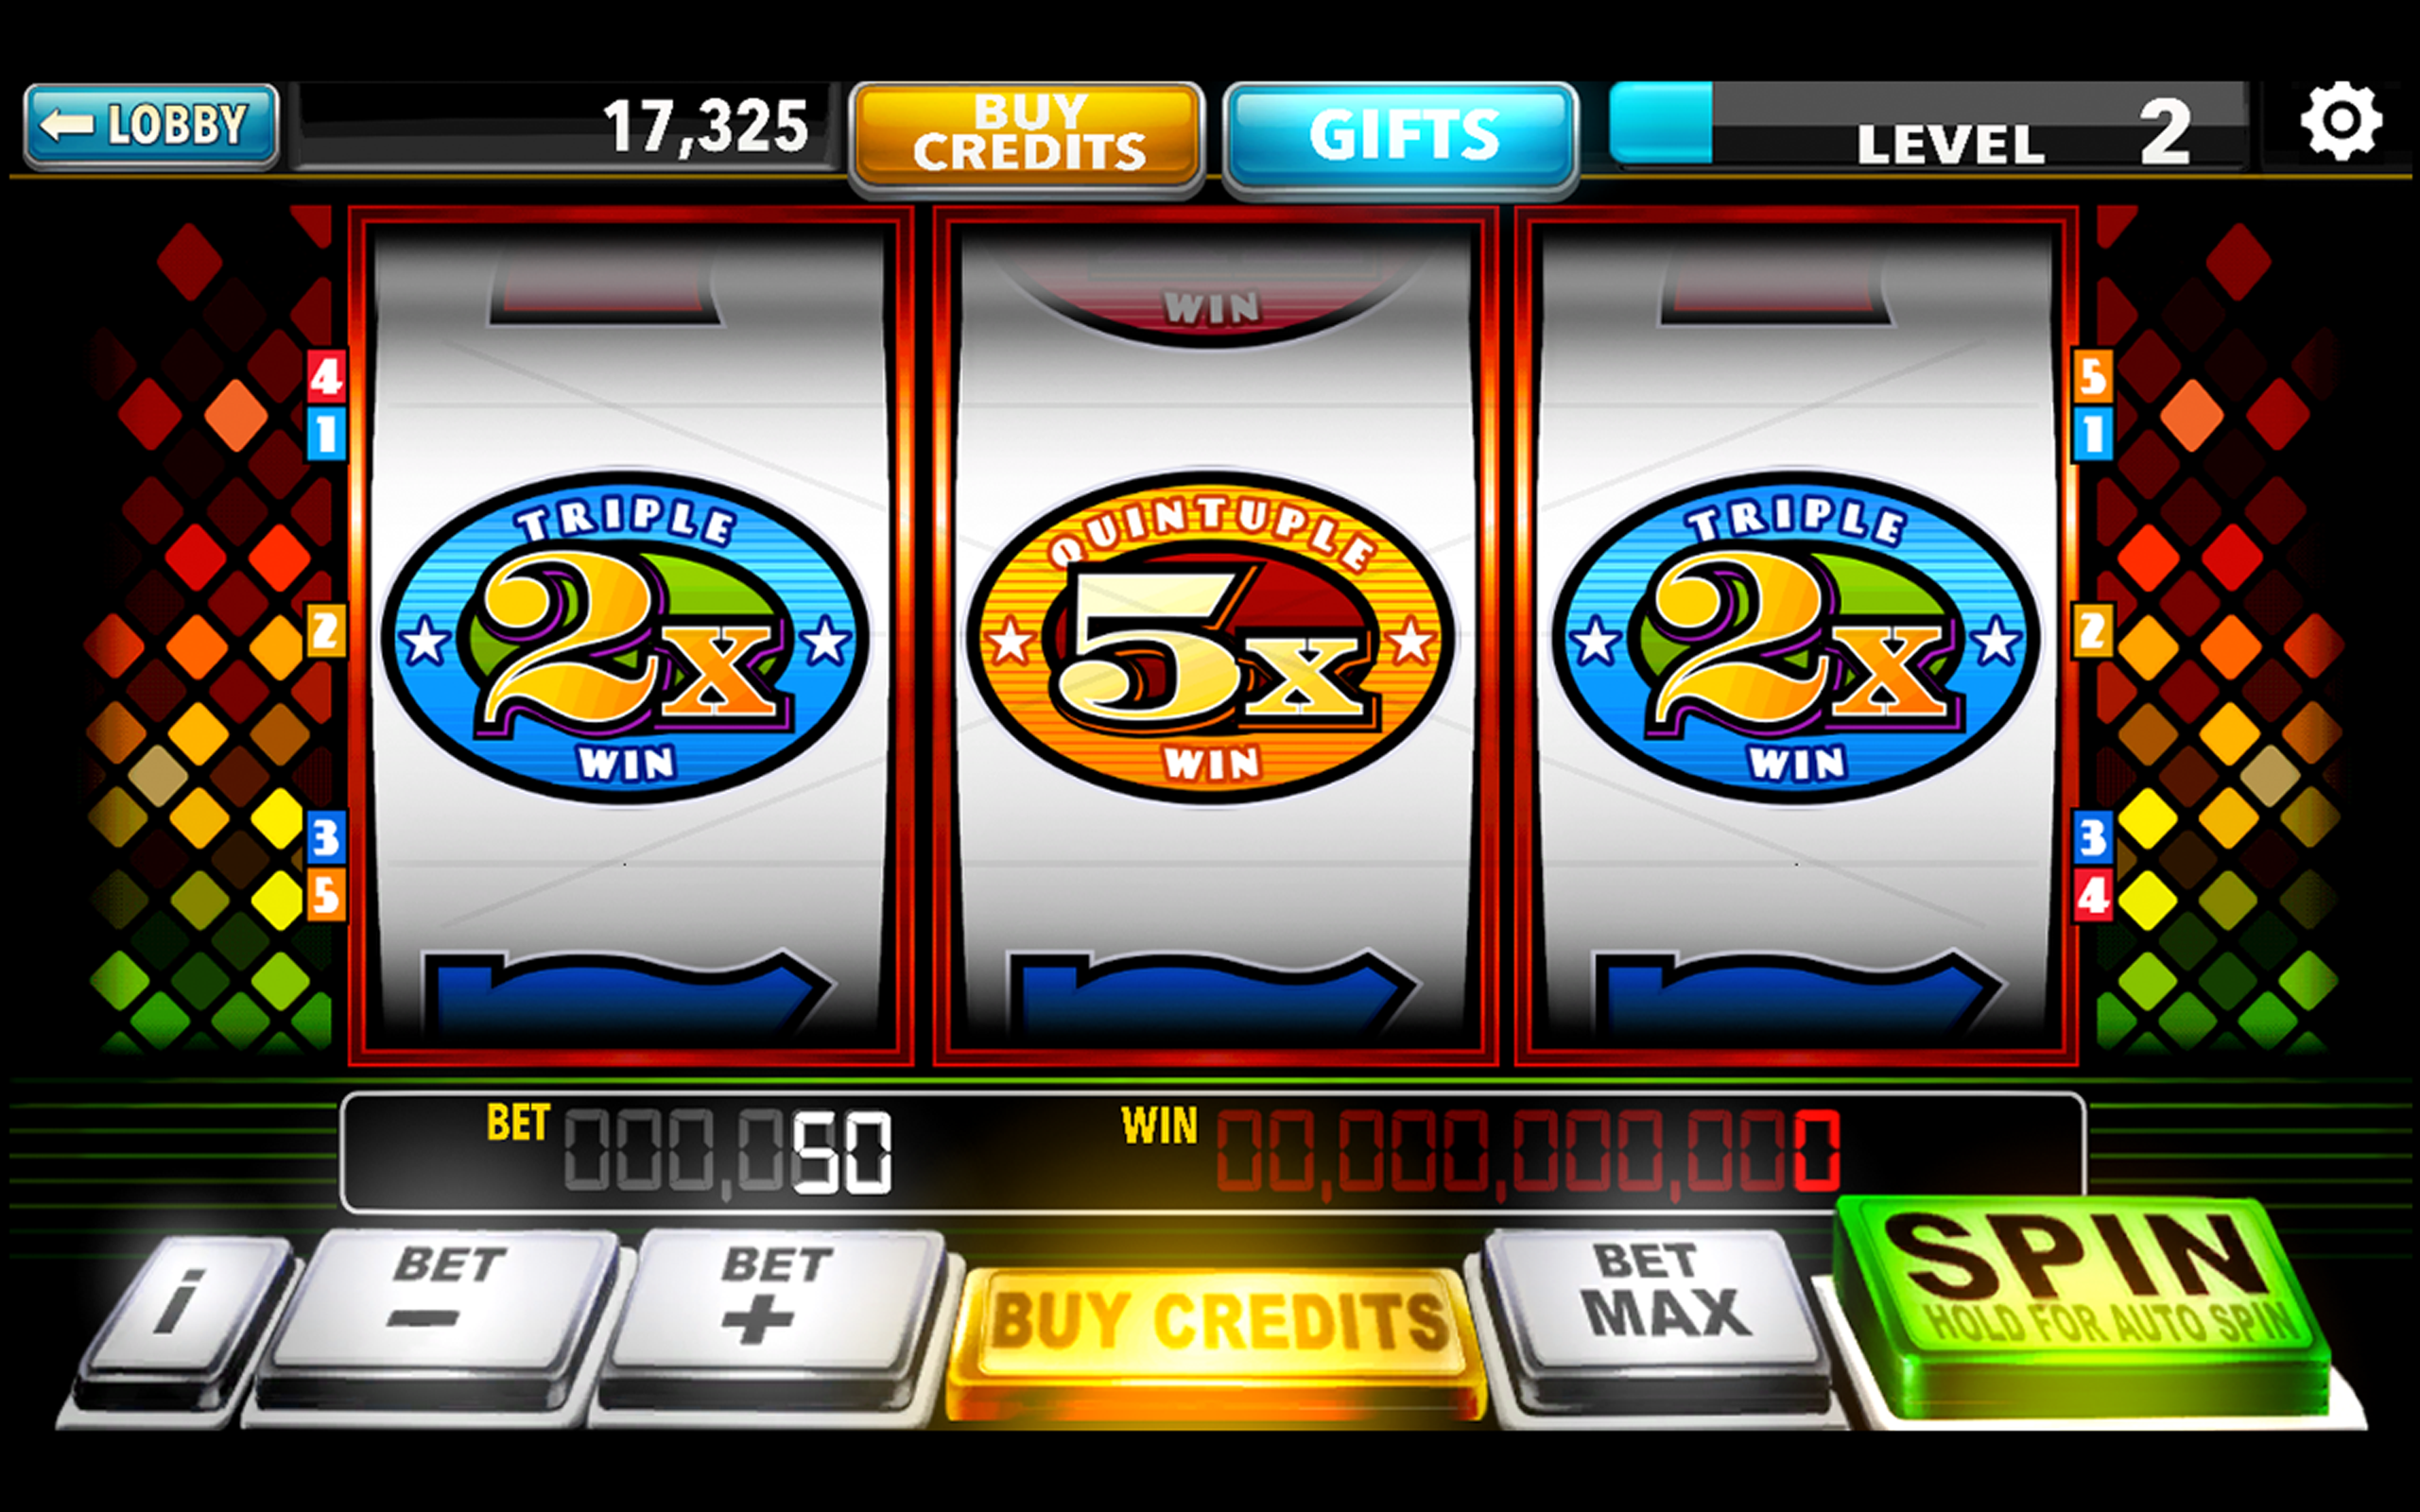 Play Slot Machines Games